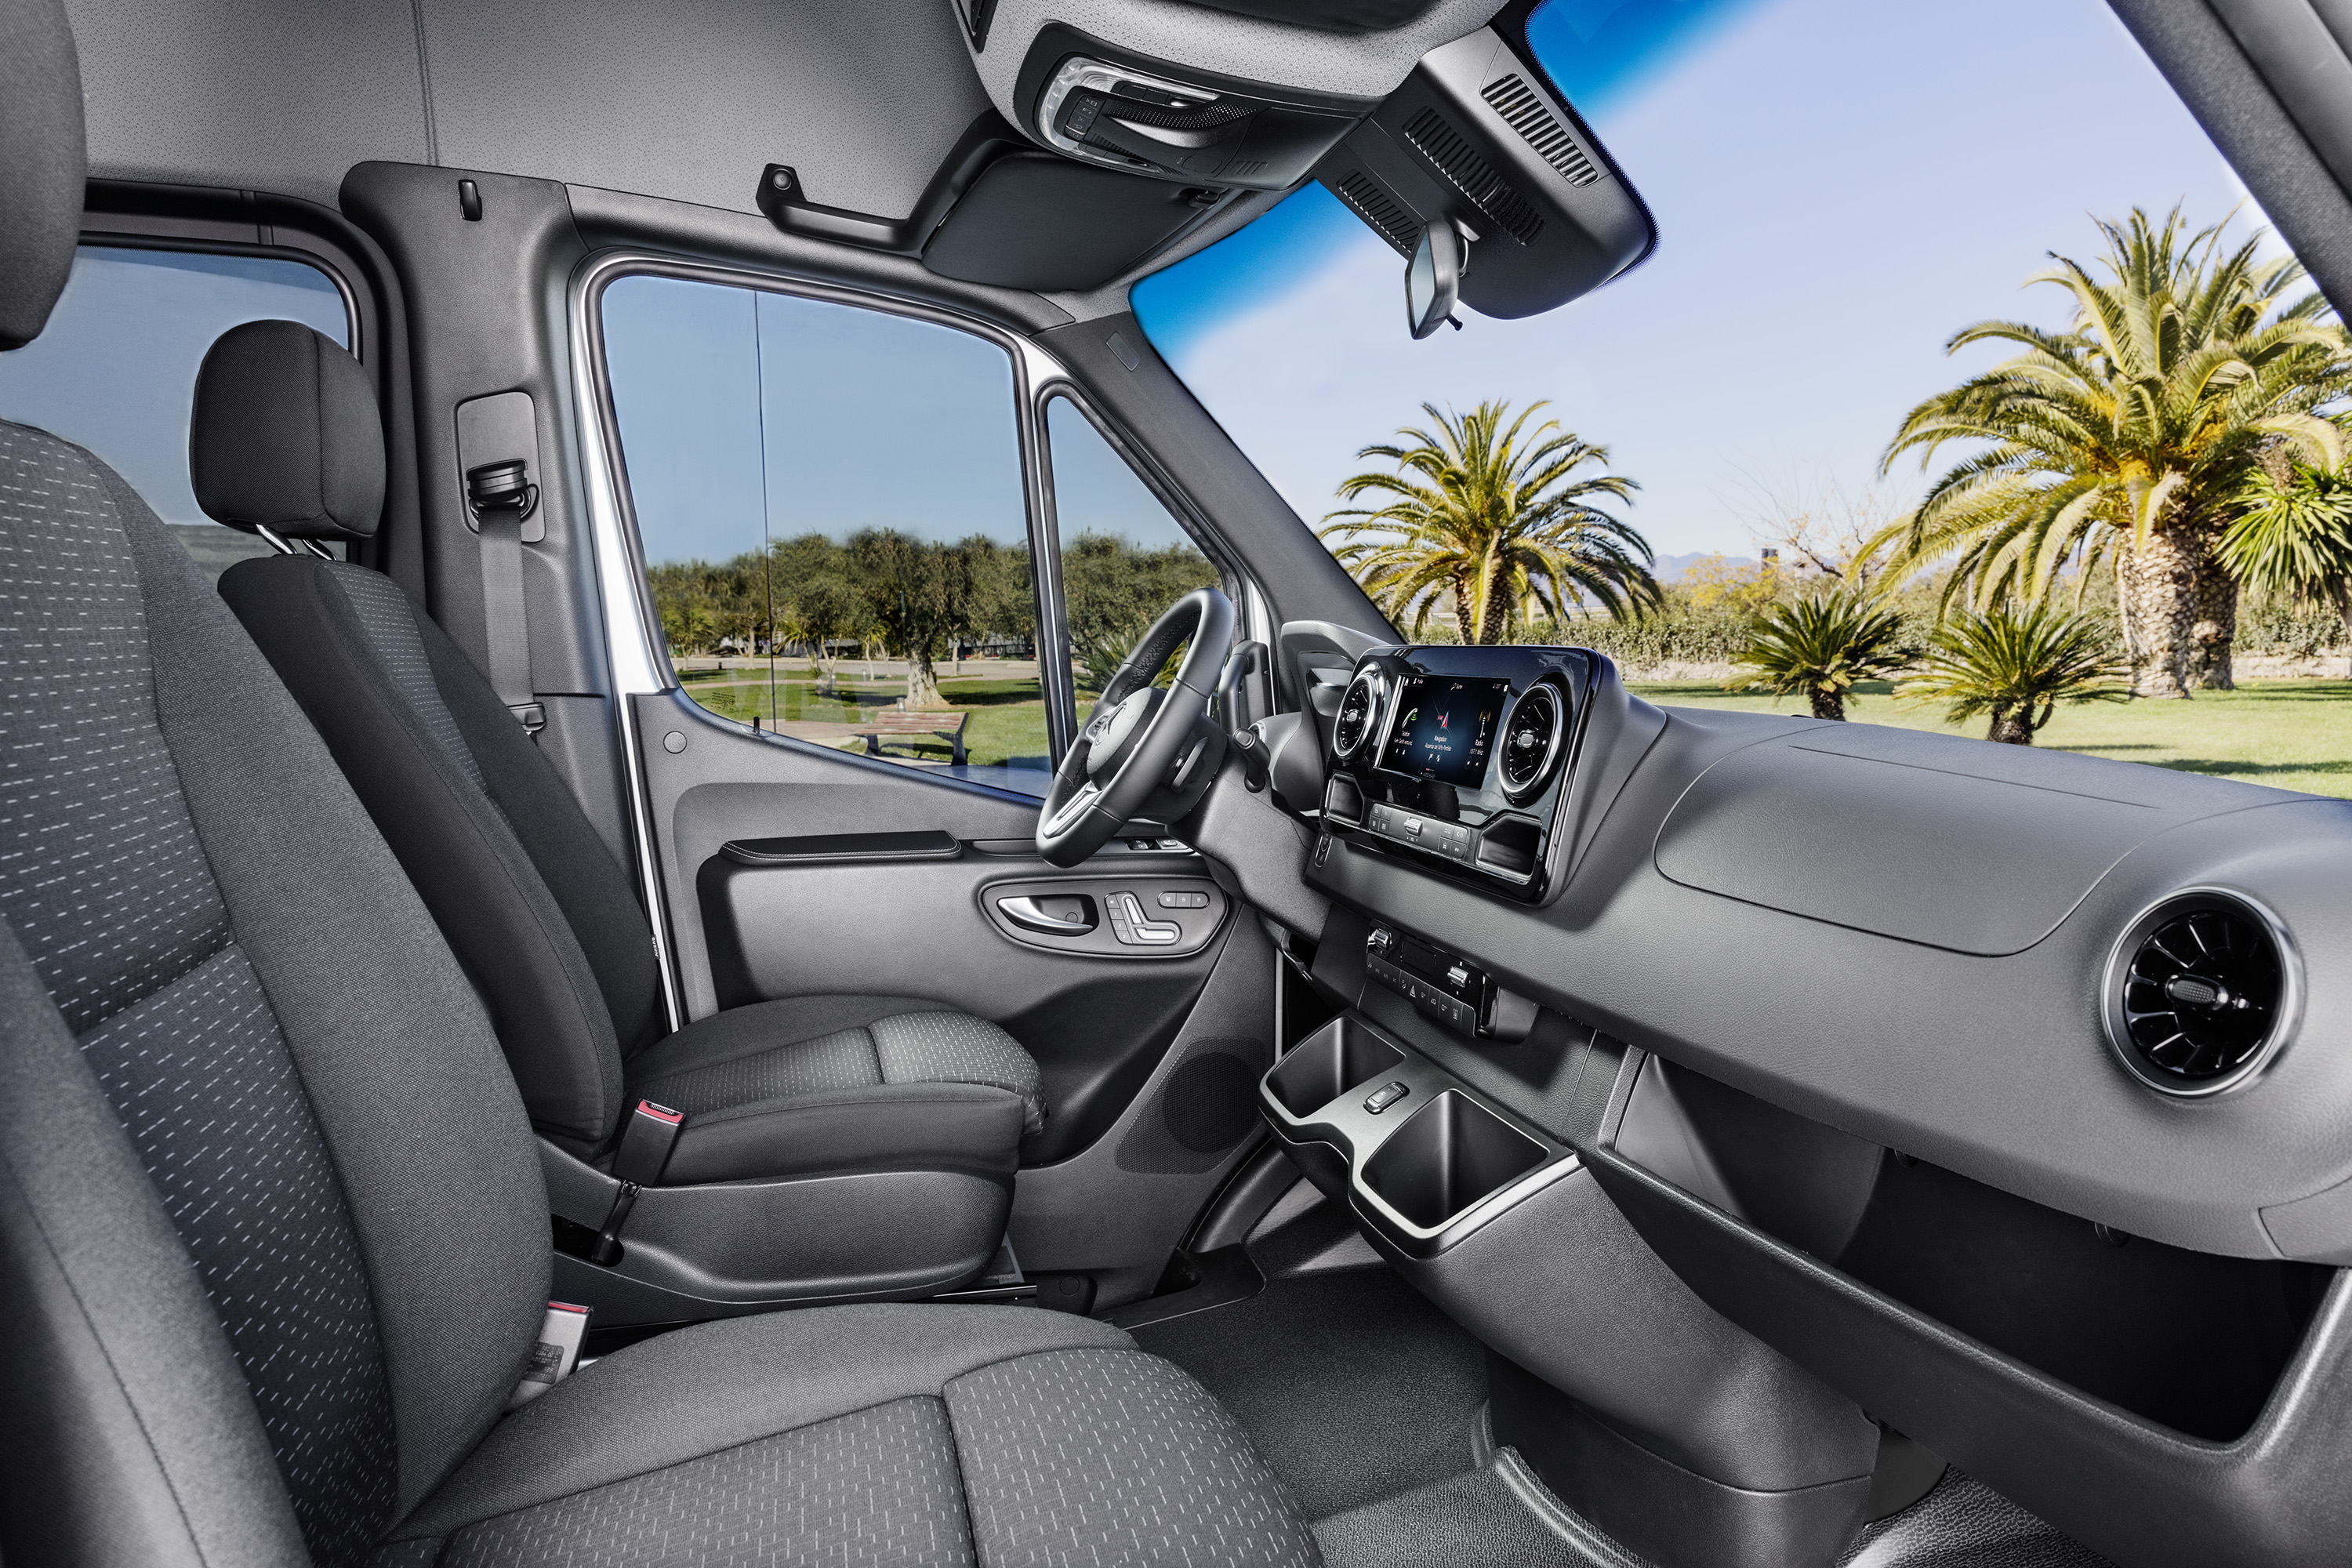 Mercedes Benz Sprinter U2013 Interior